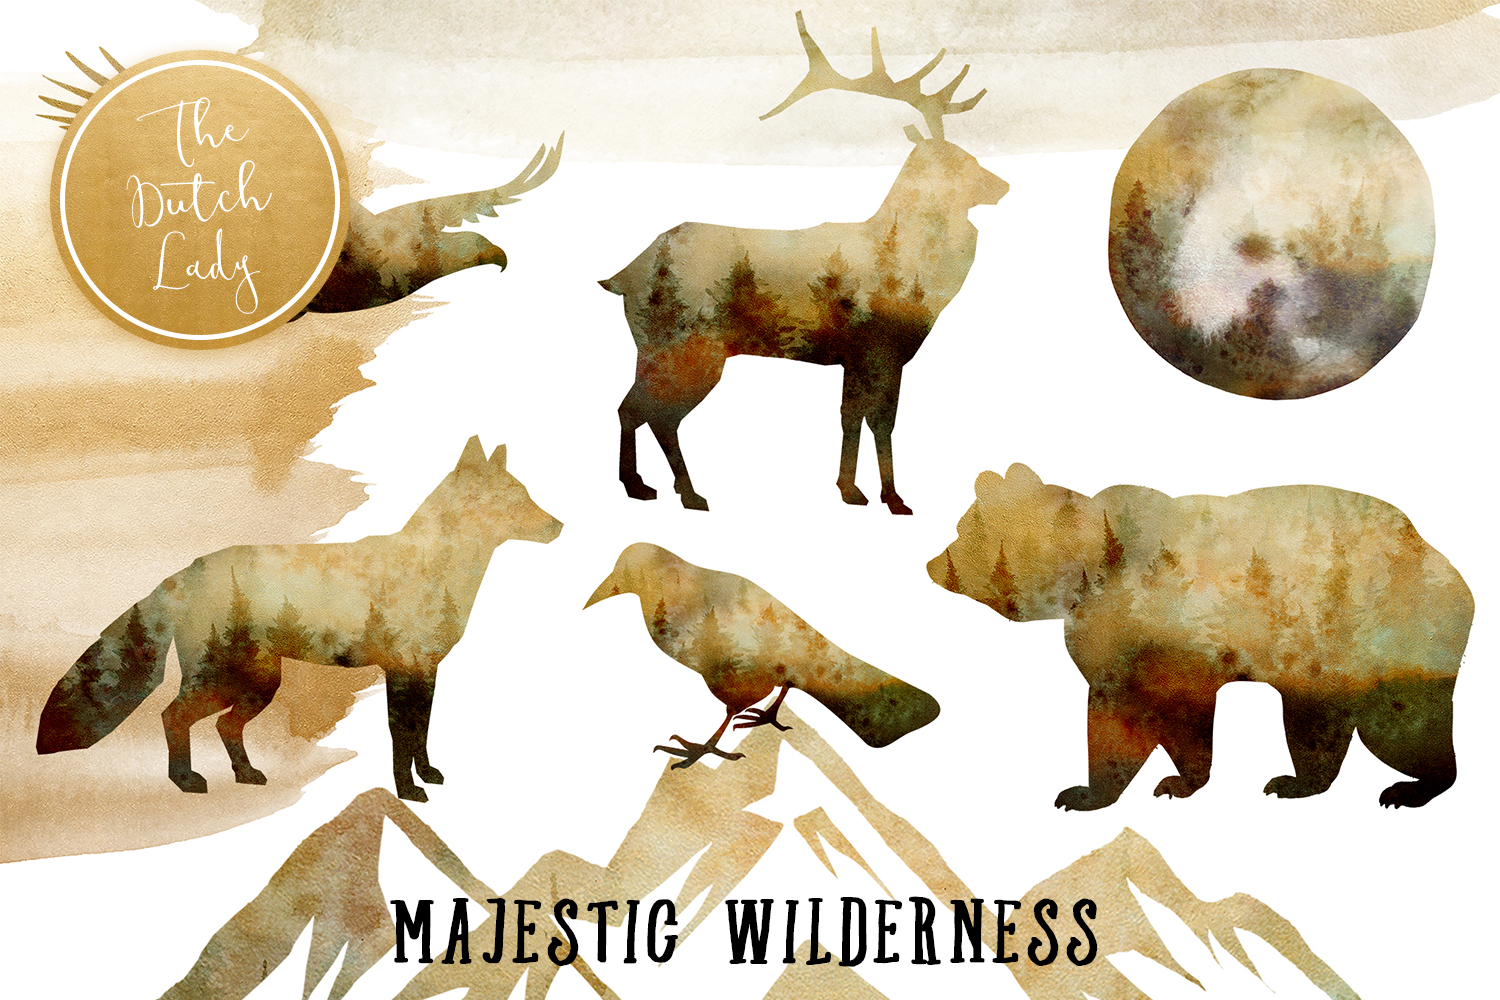 Download Free Majestic Wilderness Clipart Set Graphic By Daphnepopuliers for Cricut Explore, Silhouette and other cutting machines.